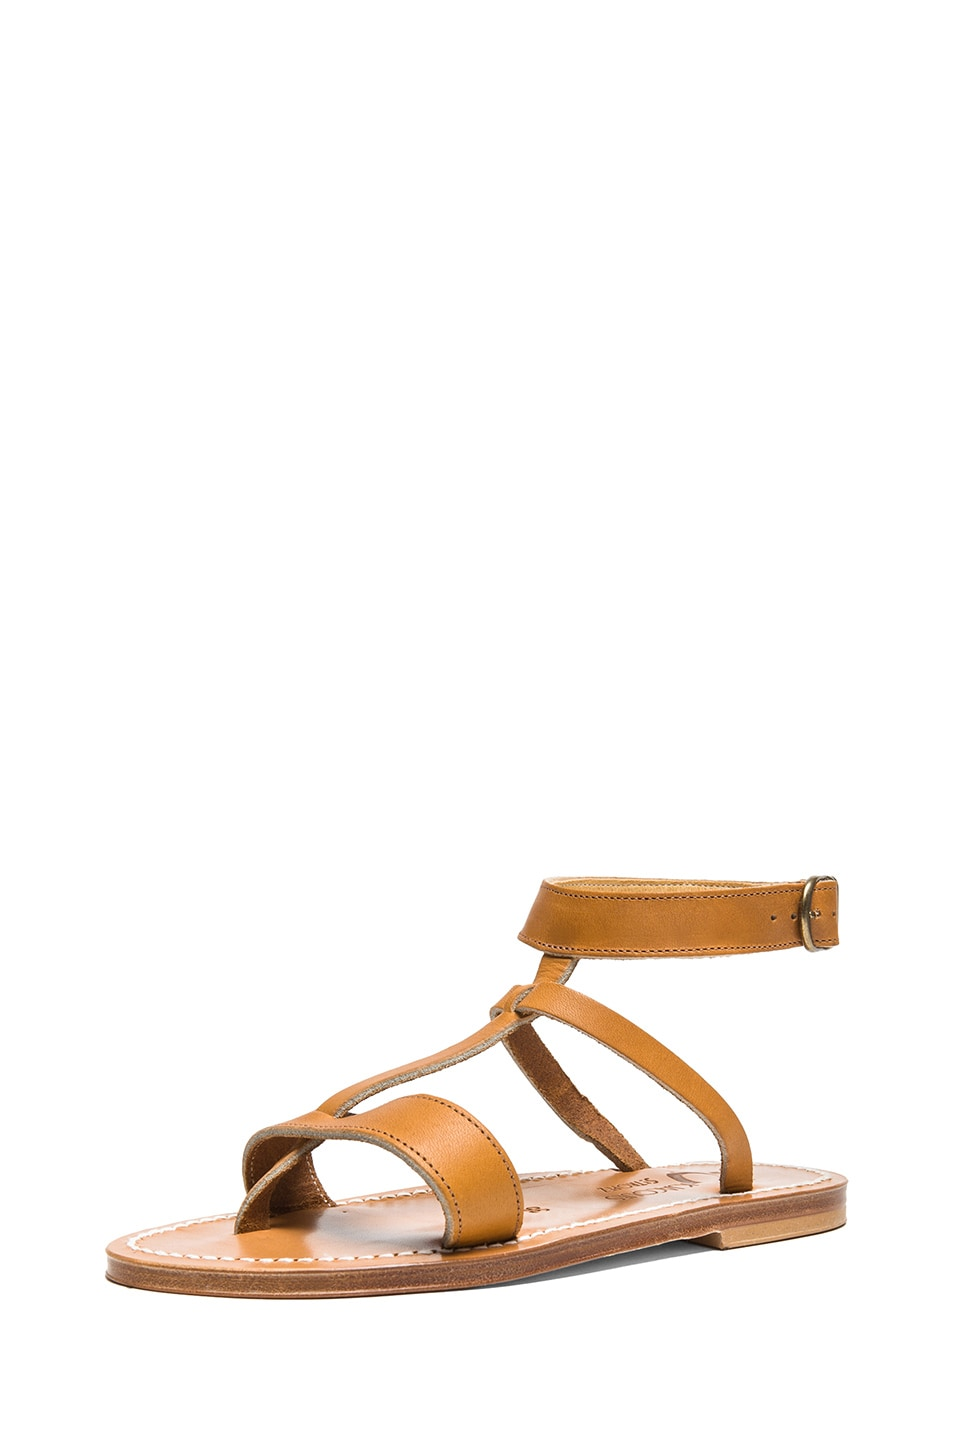 Image 2 of K Jacques Corvette Leather Sandals in Natural